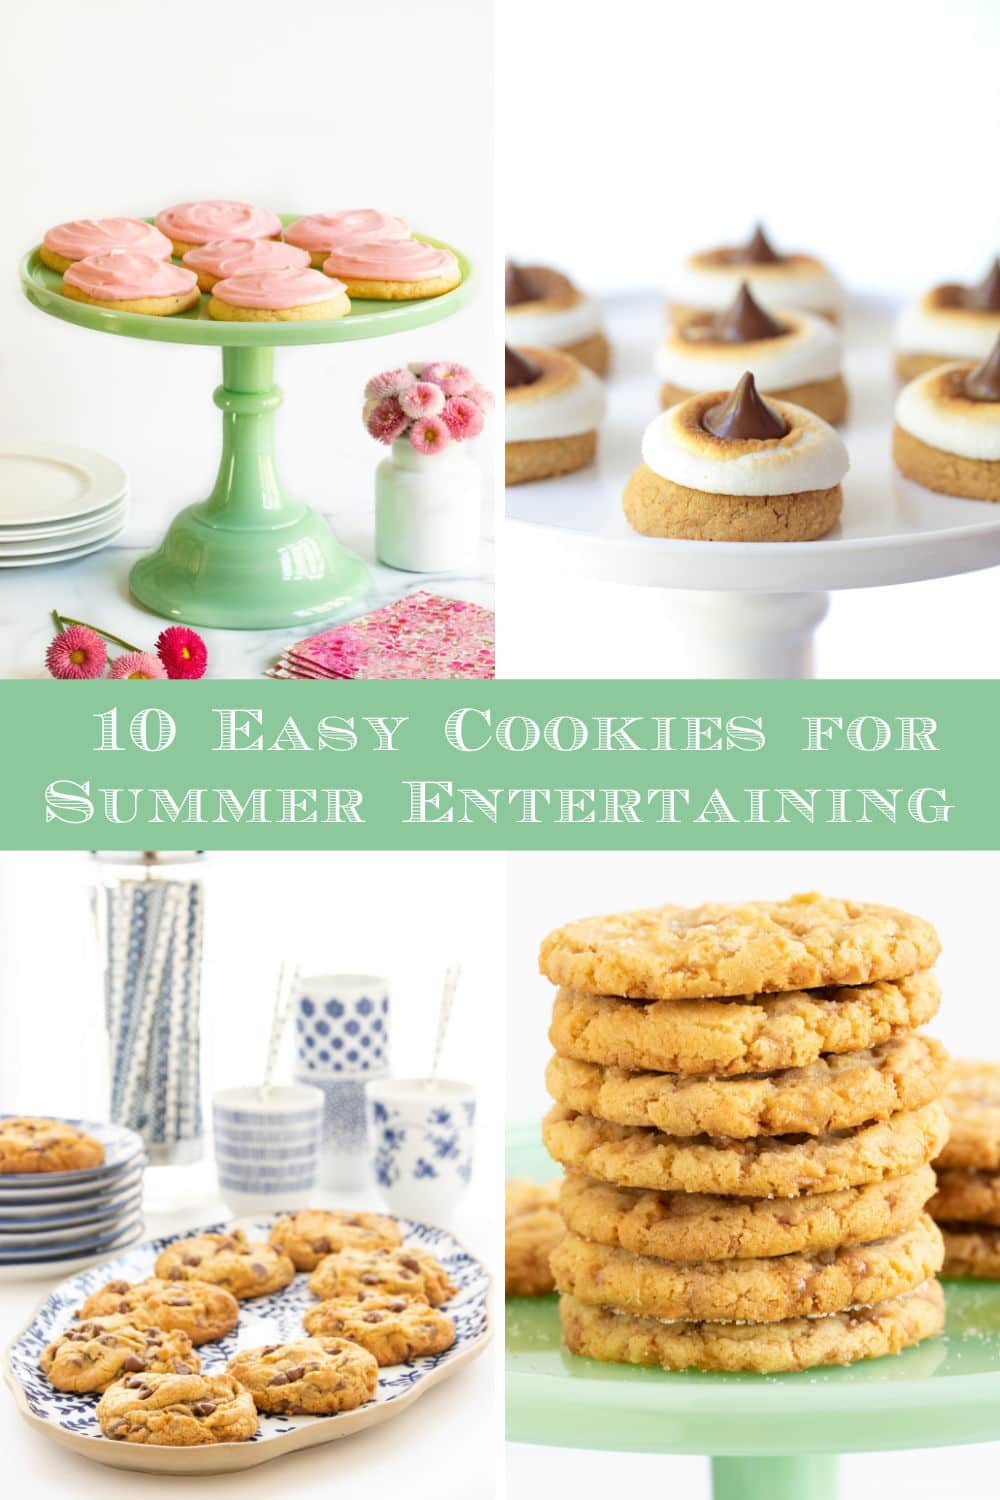 Easy Cookie Recipes for Summer Entertaining - Portable, Packable, Picnic-Perfect!